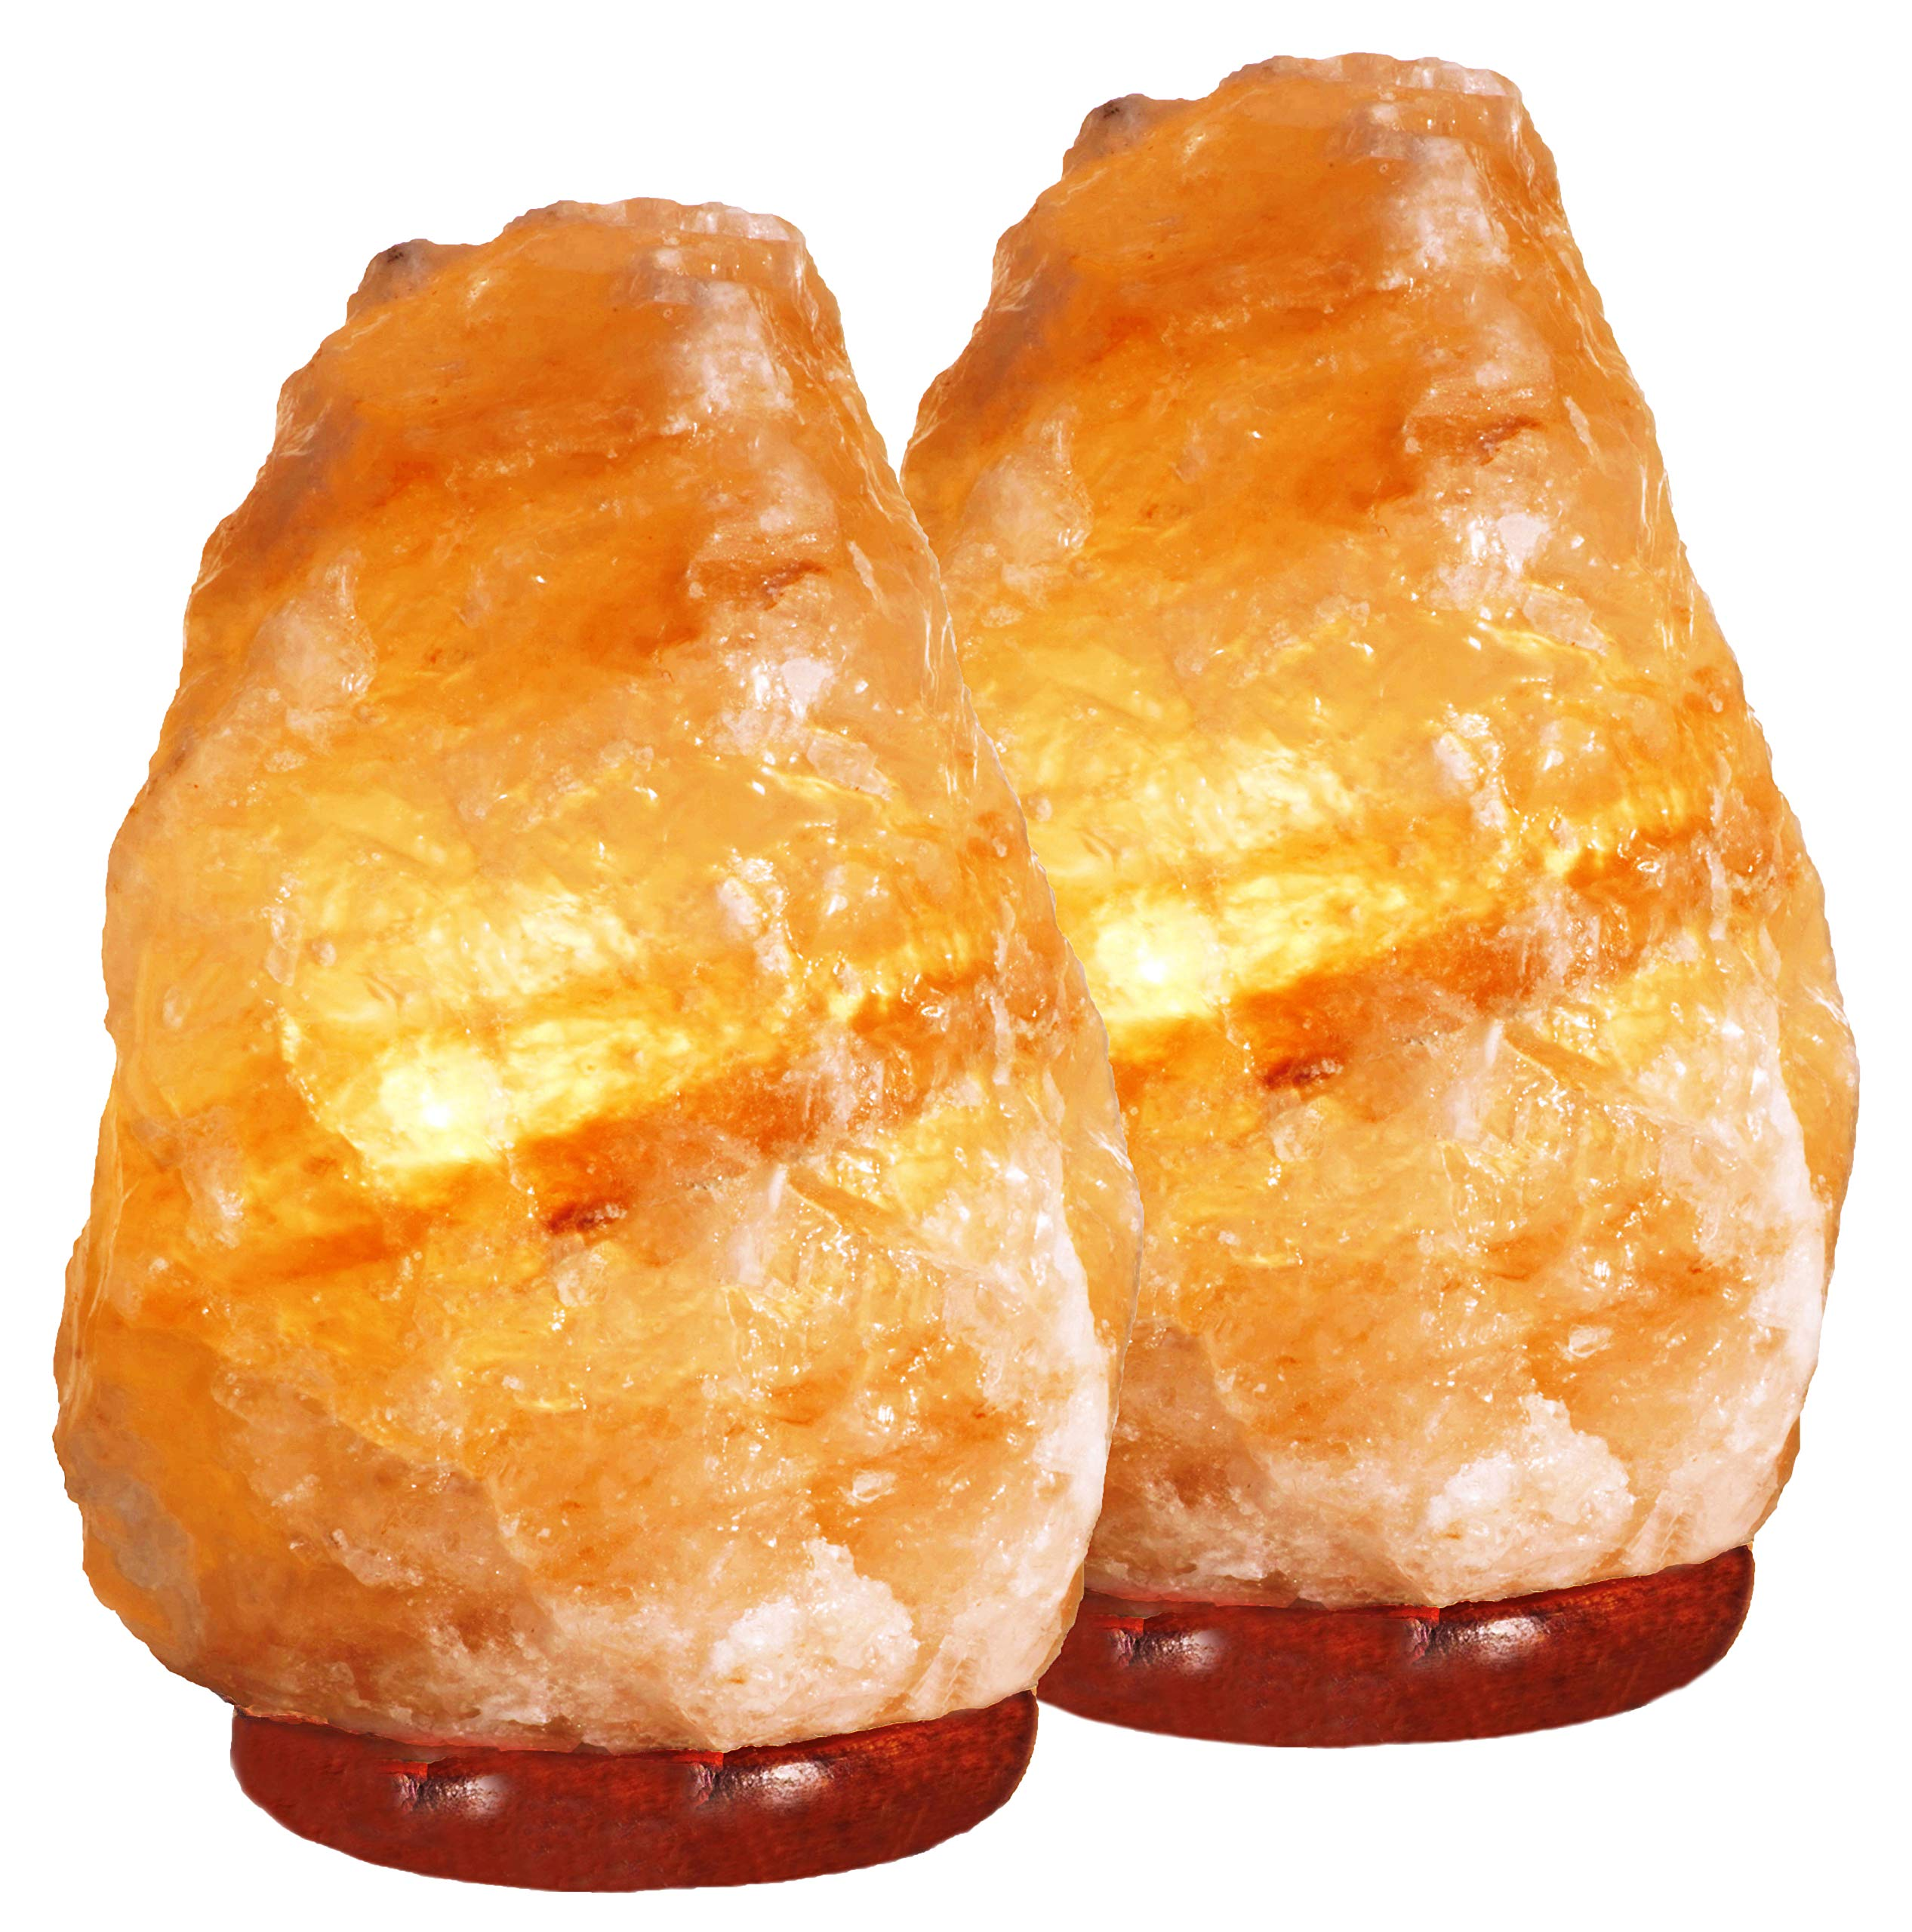 Indusclassic LN-02 Set Of 2 Natural Himalayan Crystal Rock Salt Lamp Ionizer Air Purifier 4~7 lbs/UL Listed Cord and Dimmer Control Switch, Exceptional Quality Packaging